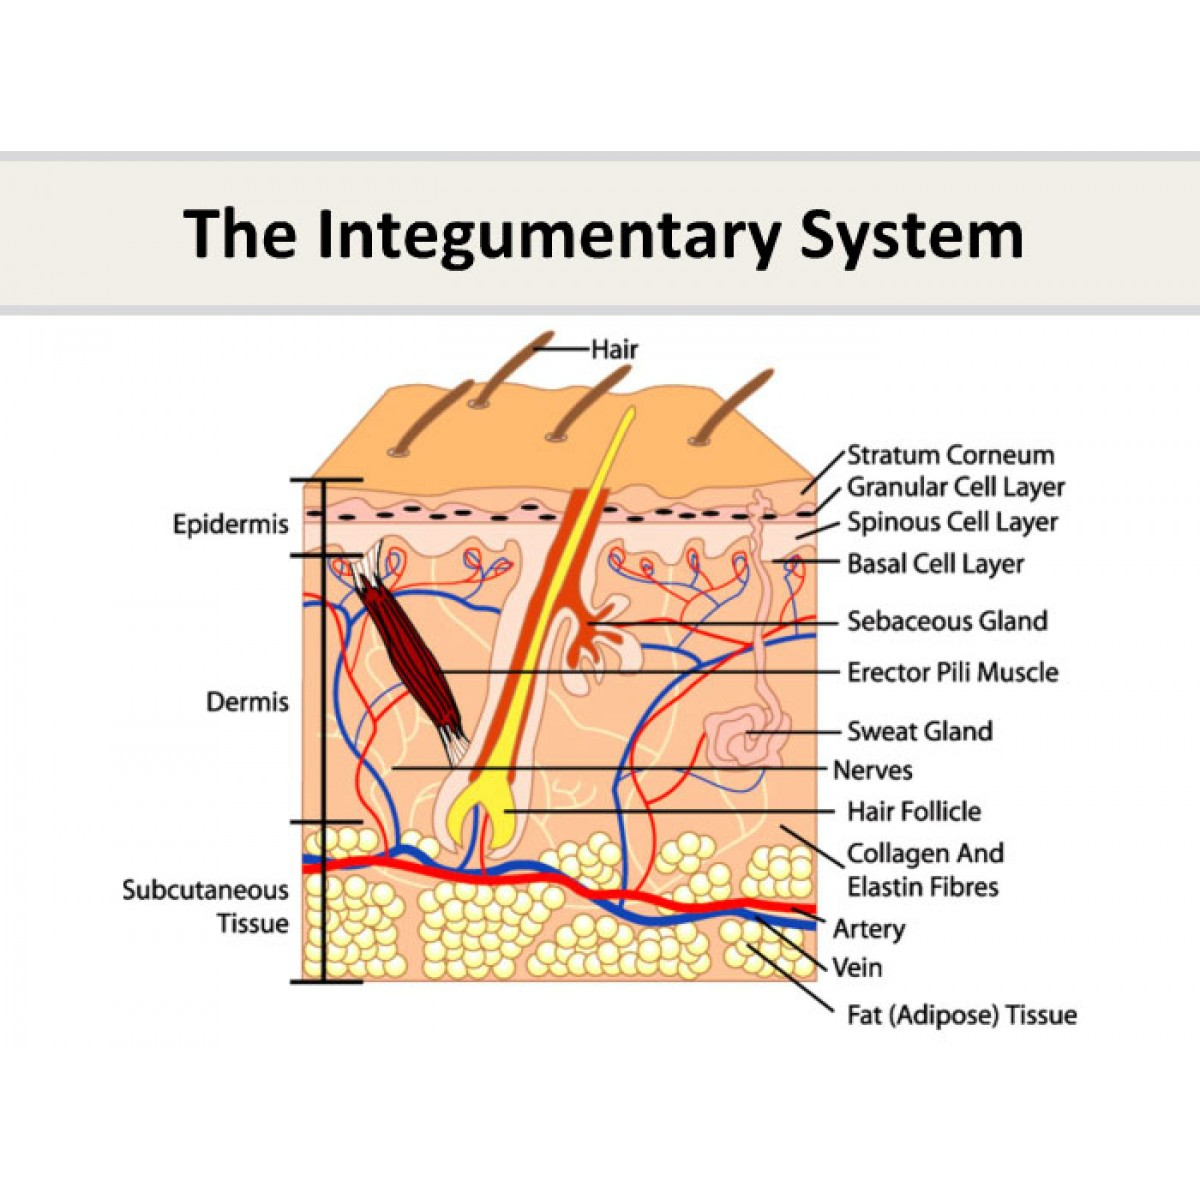 The Integumentary System Aquire Training Solutions